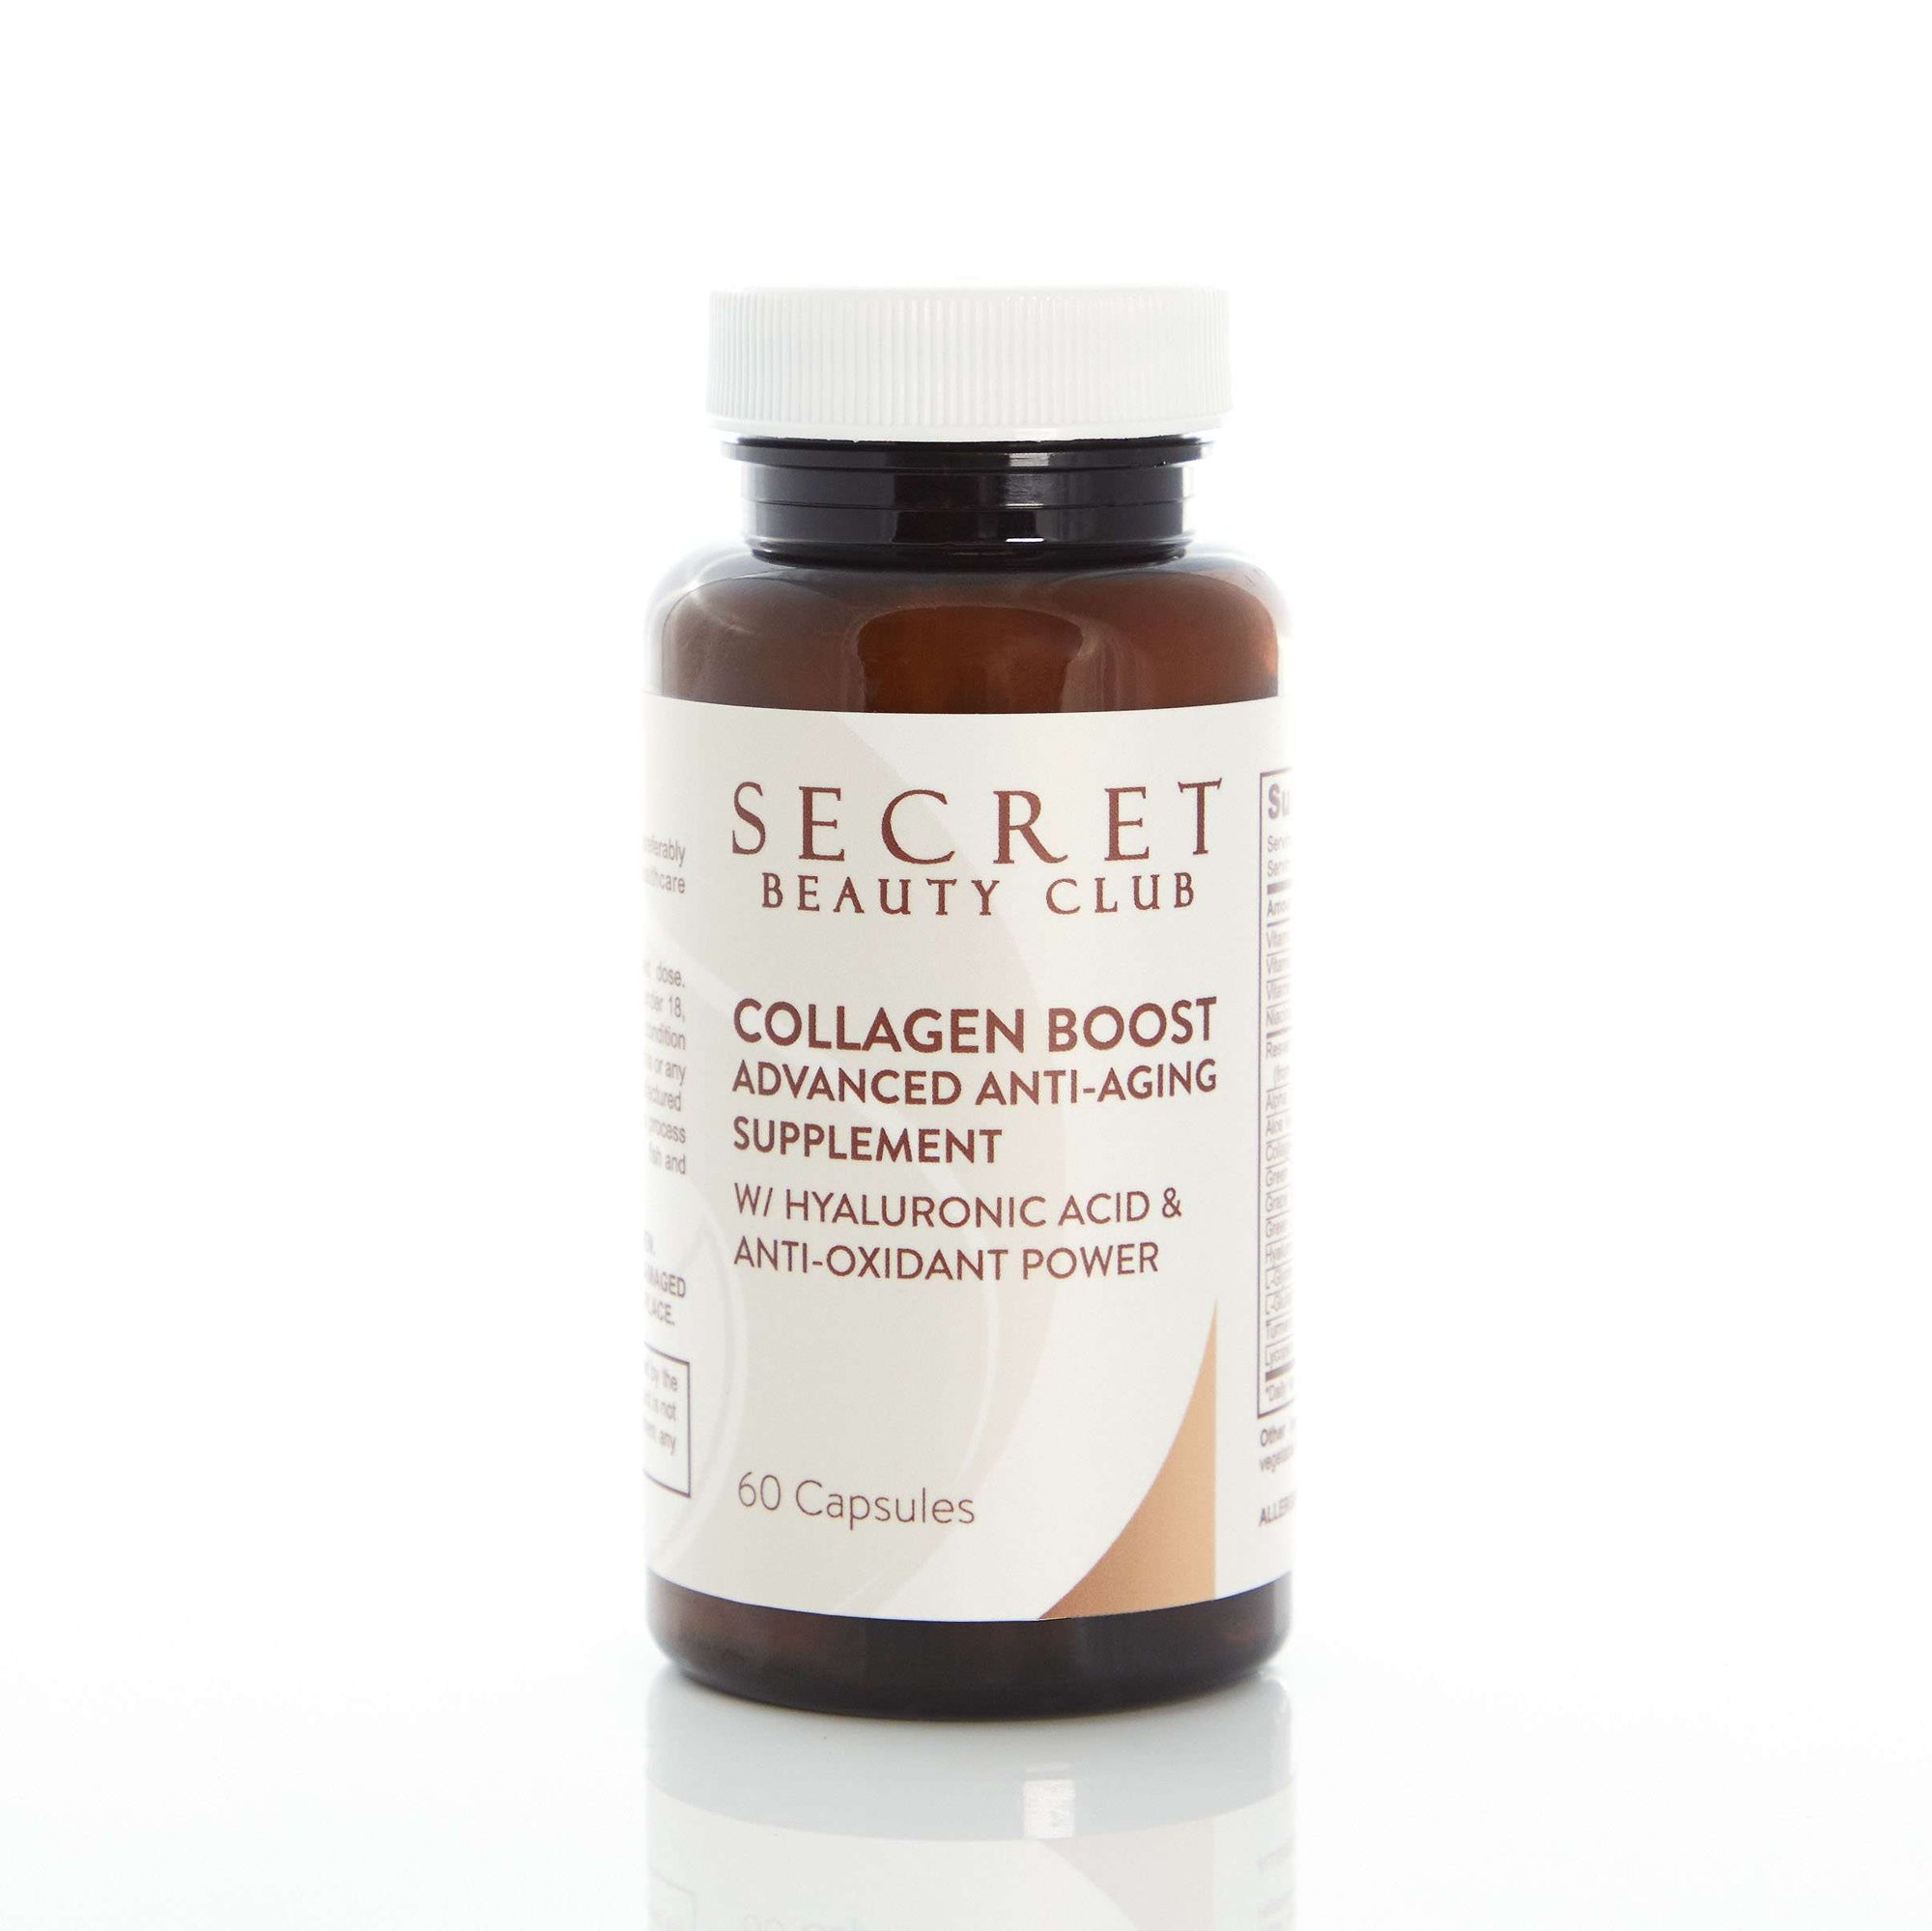 Collagen Boost Supplement - Secret Beauty Club